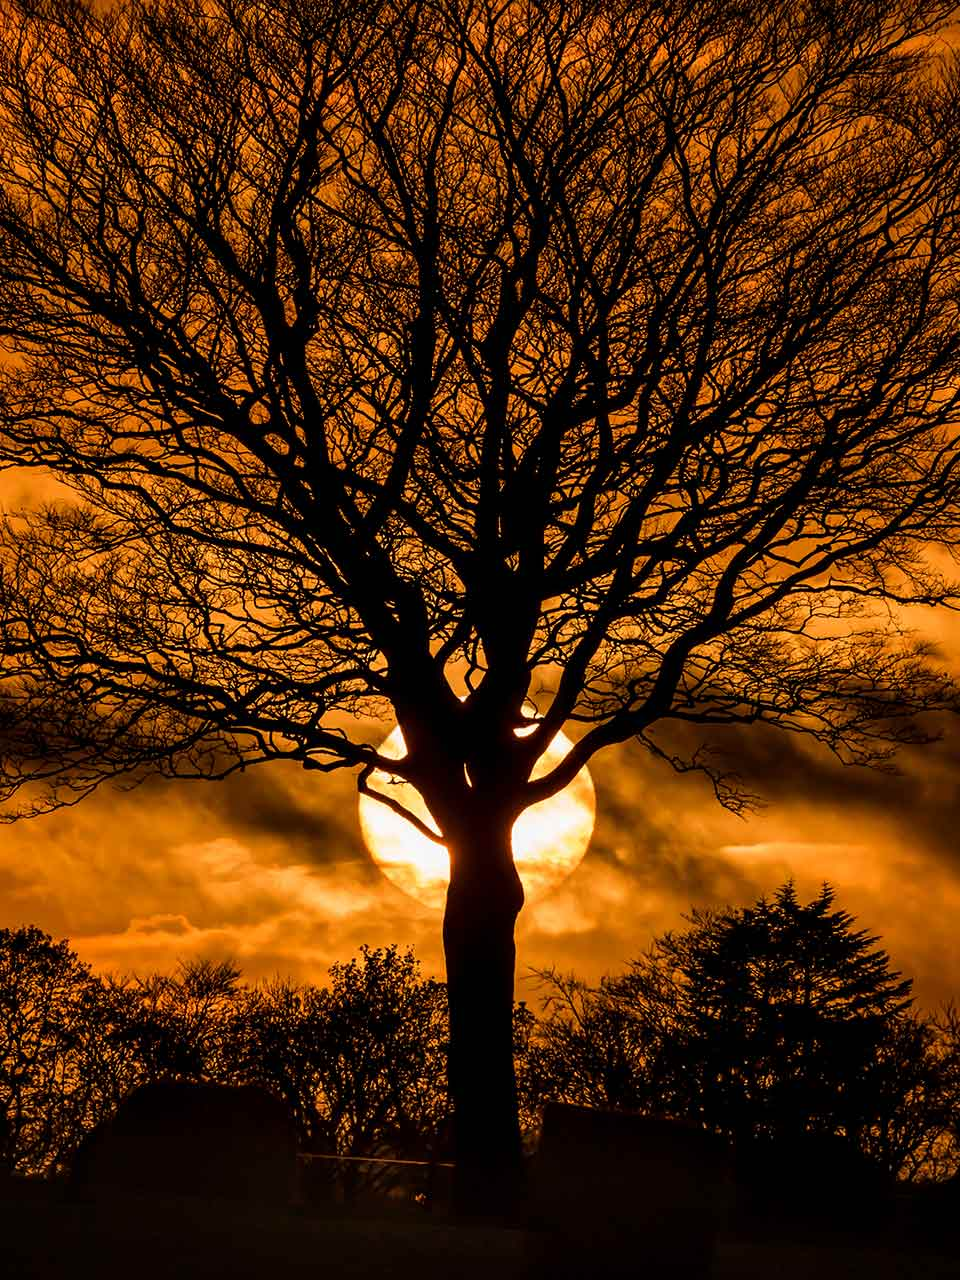 tree-sunset-graphic-as-fuck-1280-wee.jpg